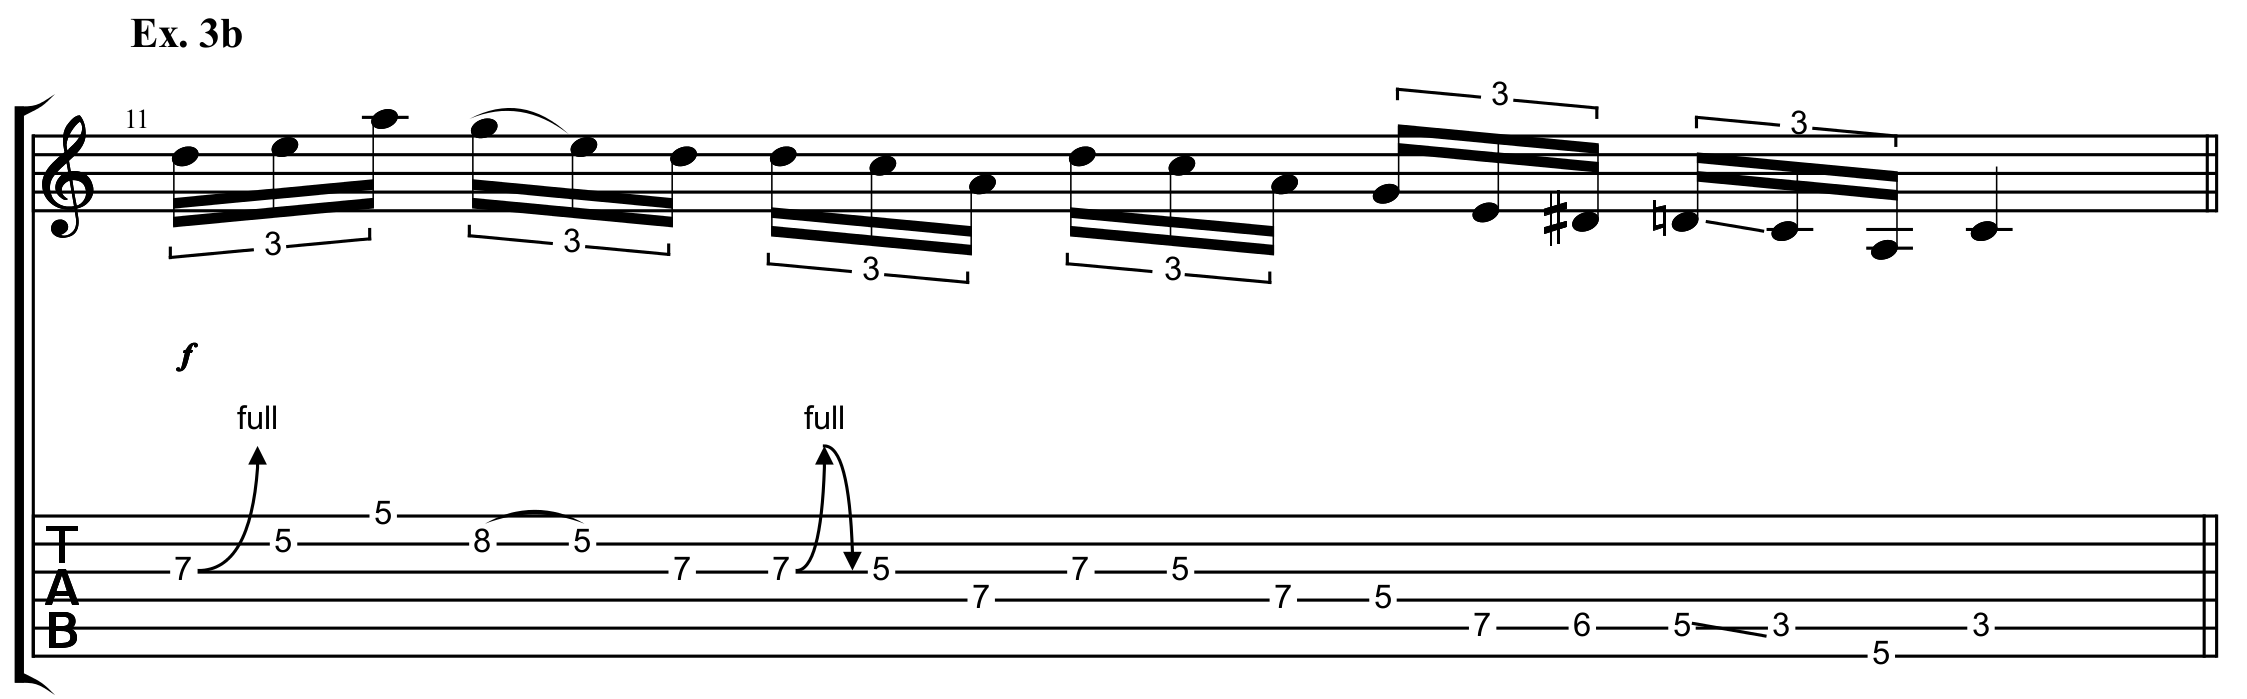 descending pentatonic scale run inspired by pink floyd